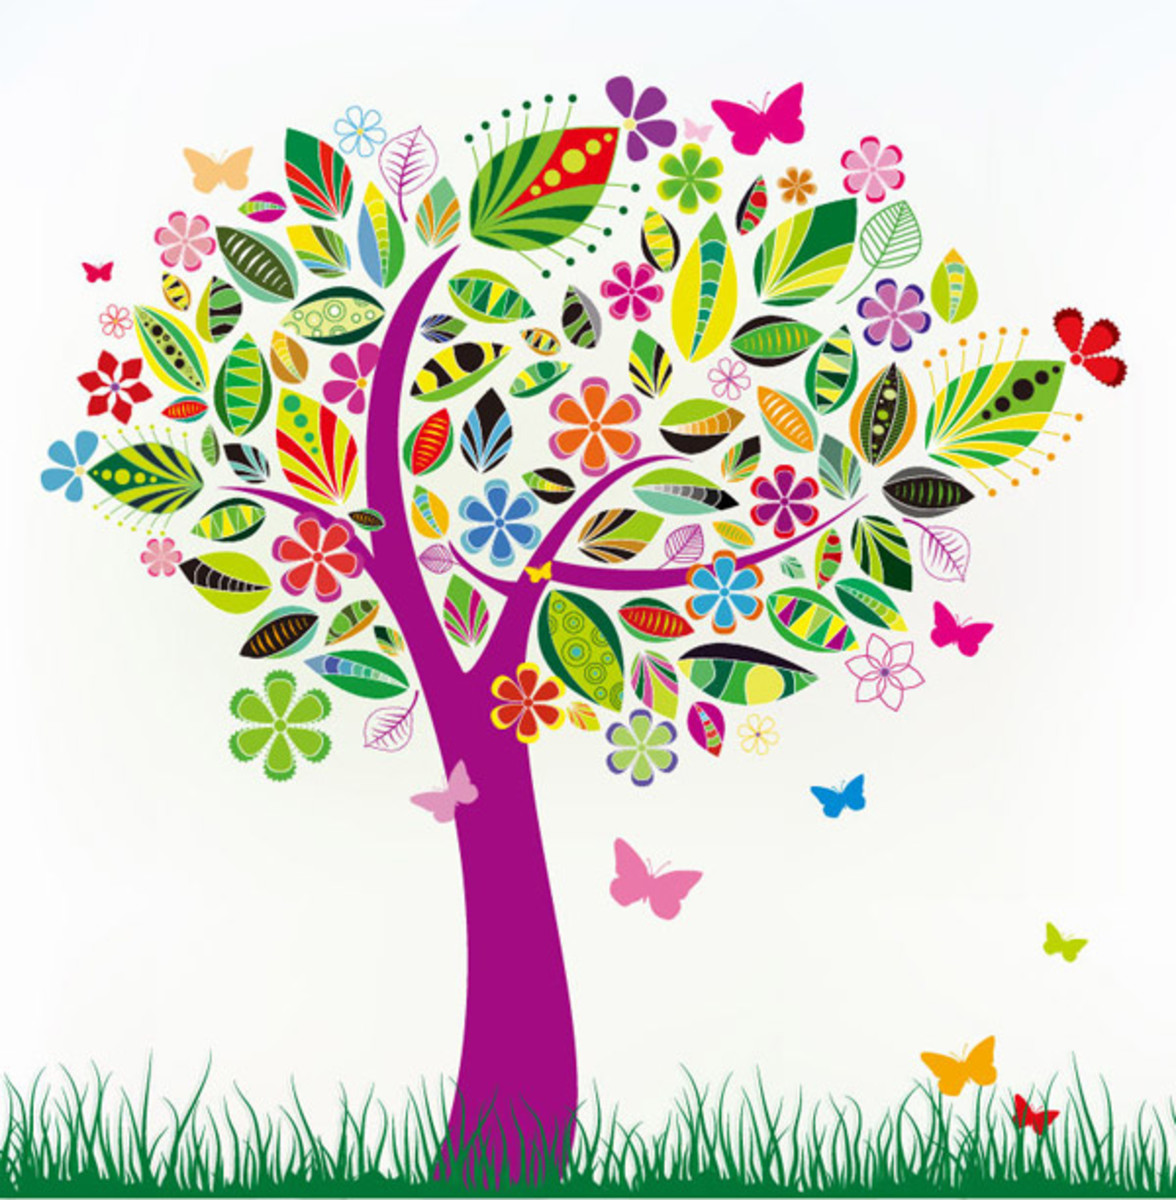 Tree with New Spring Leaves, Blossoms and Butterflies